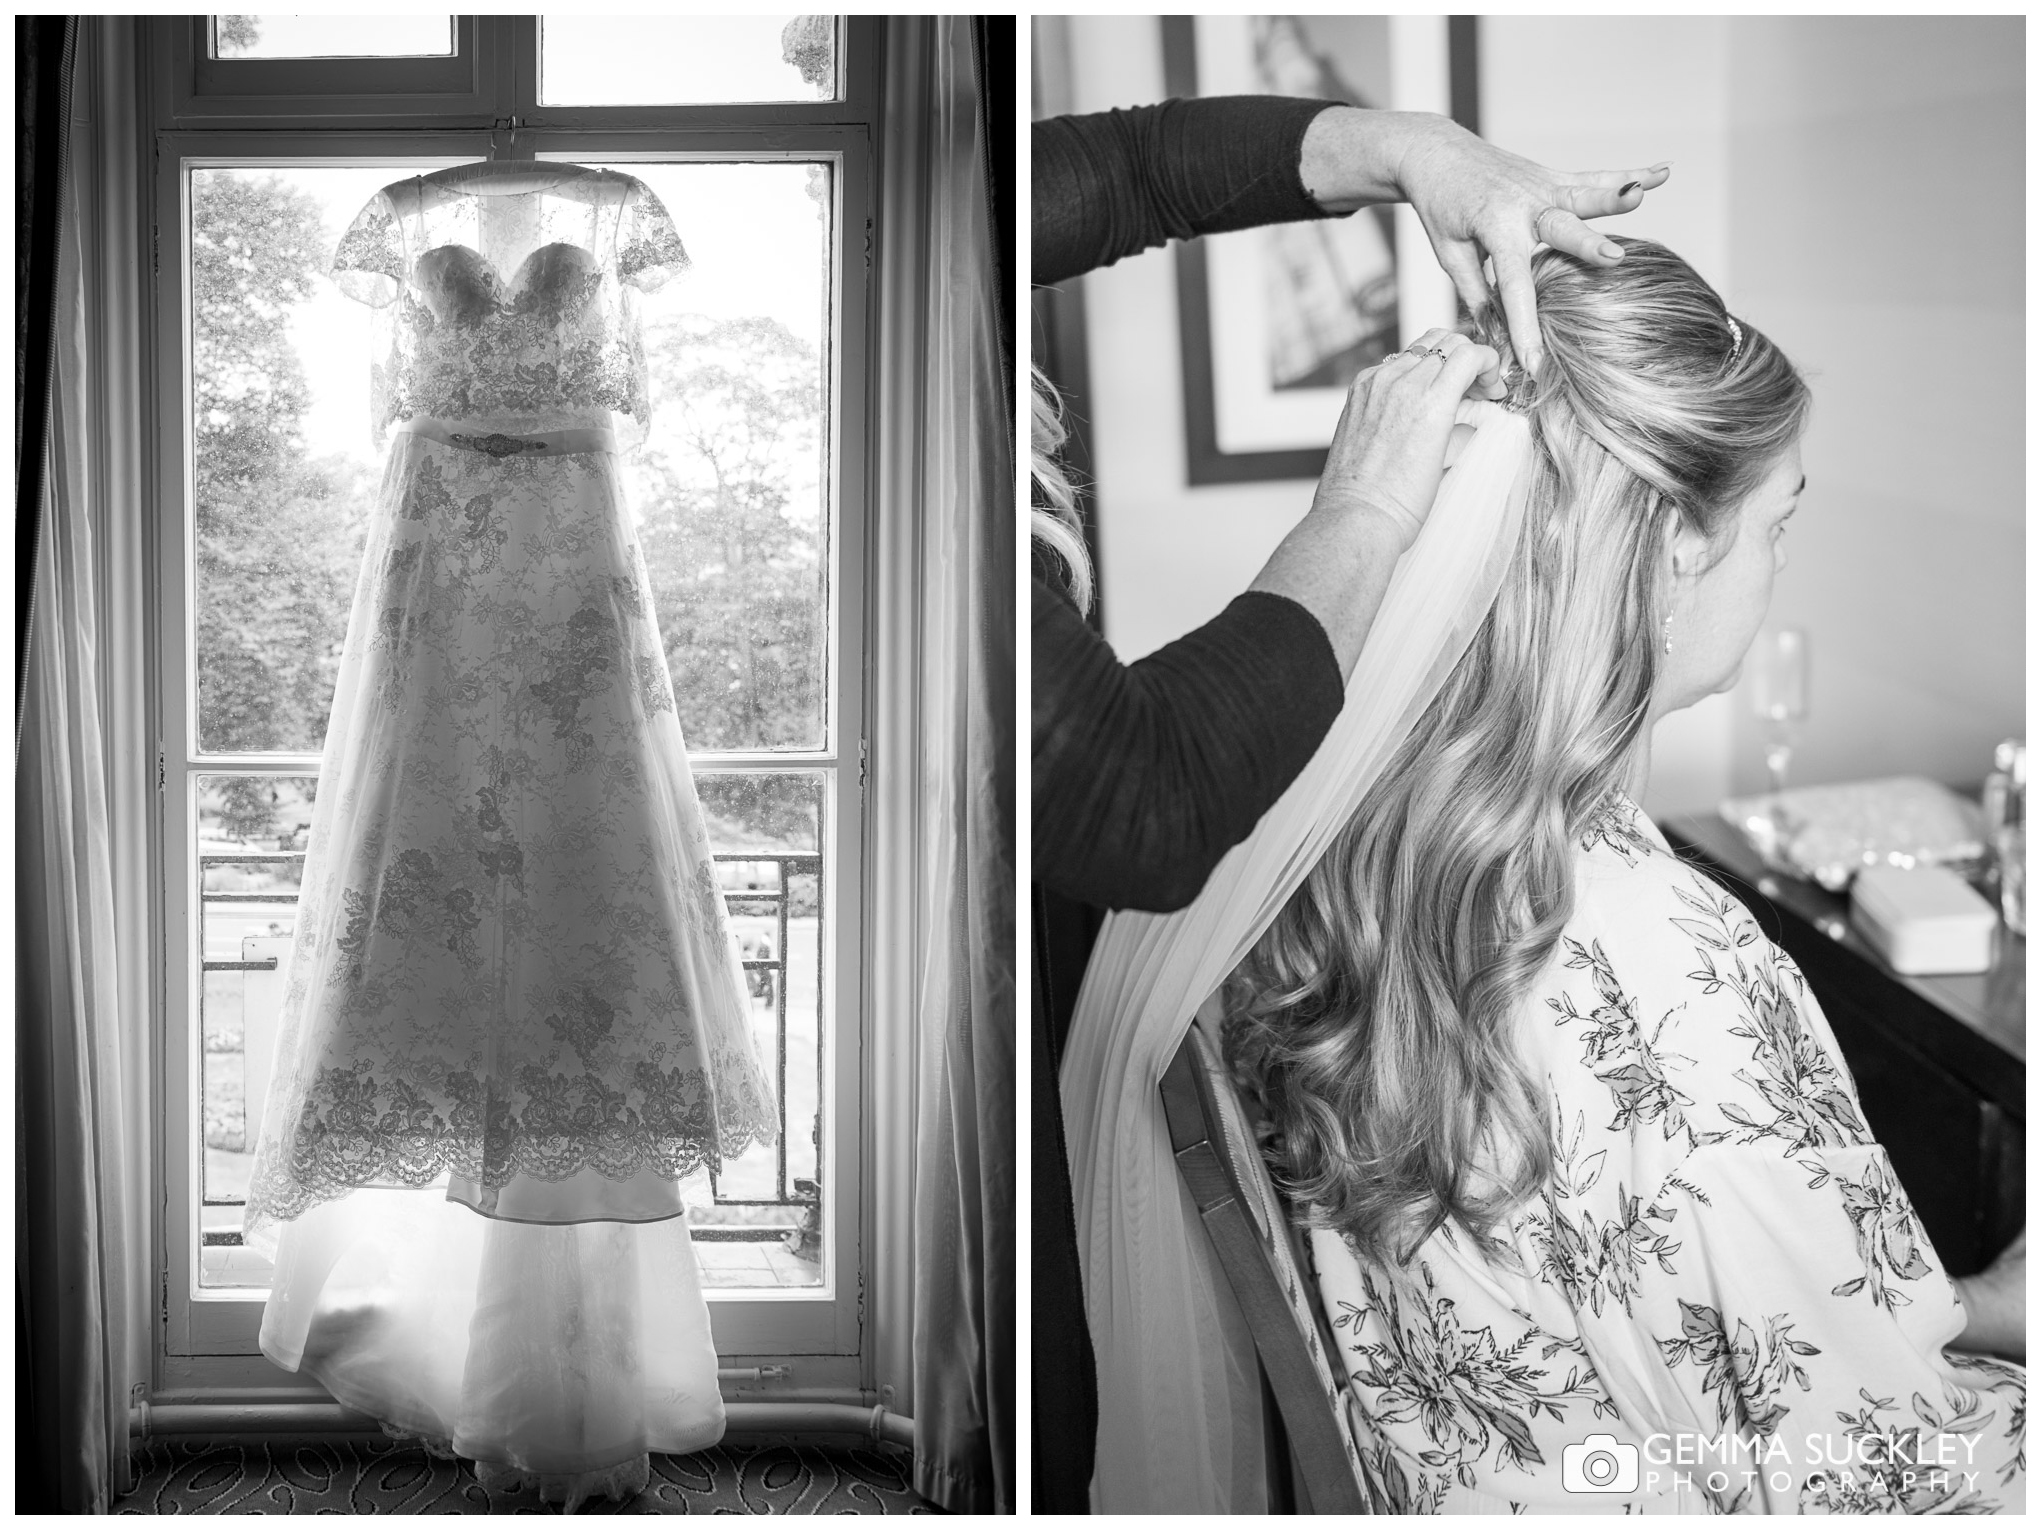 harrogate-wedding-louge-wedding-dress©gemmasuckleyphotography.jpg